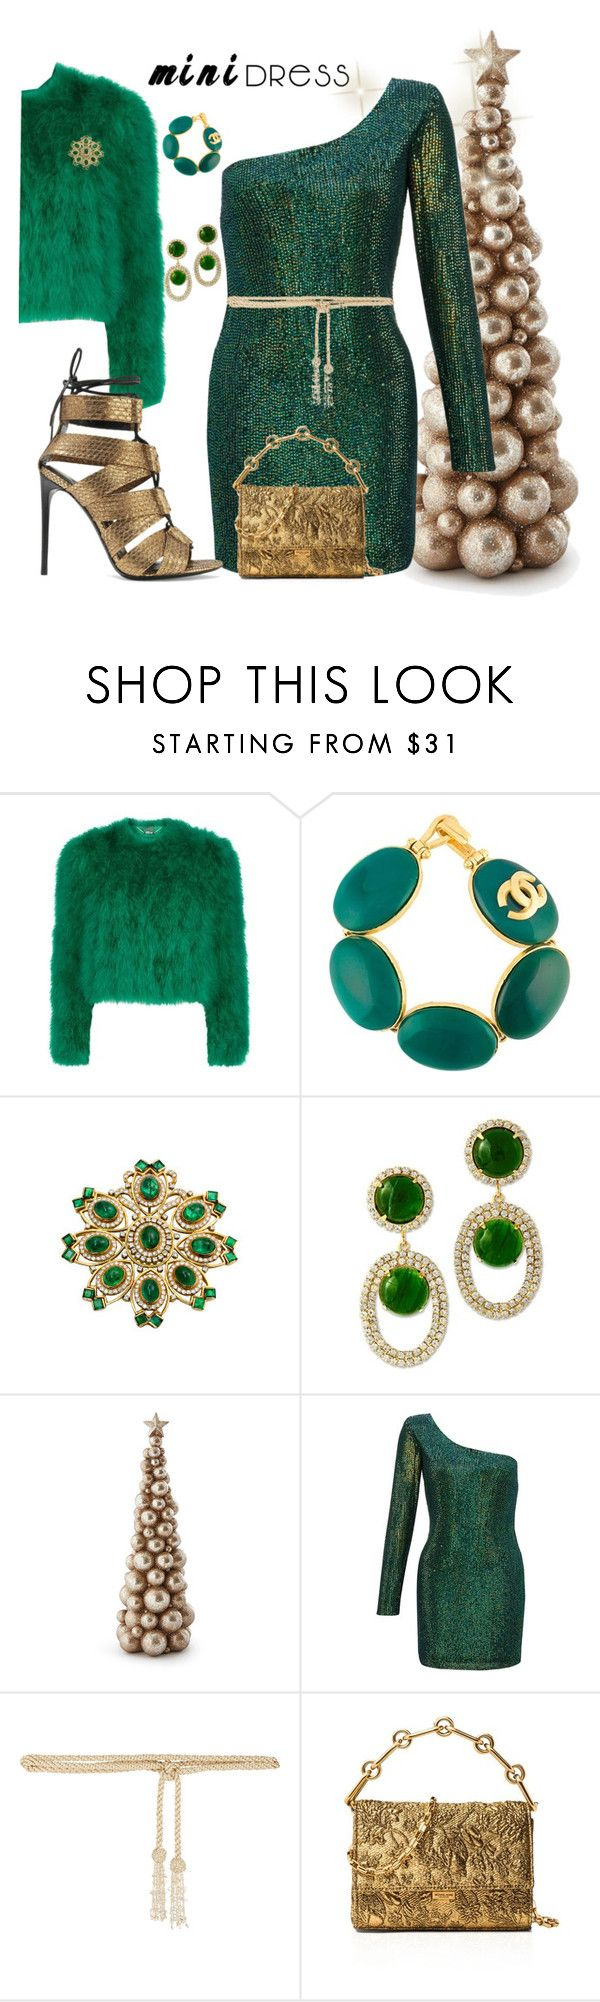 """""""Holiday mini mini dress"""" by ellenfischerbeauty ❤ liked on Polyvore featuring Alexander McQueen, Chanel, Kenneth Jay Lane, Ariella, Valentino, Michael Kors and Tom Ford"""